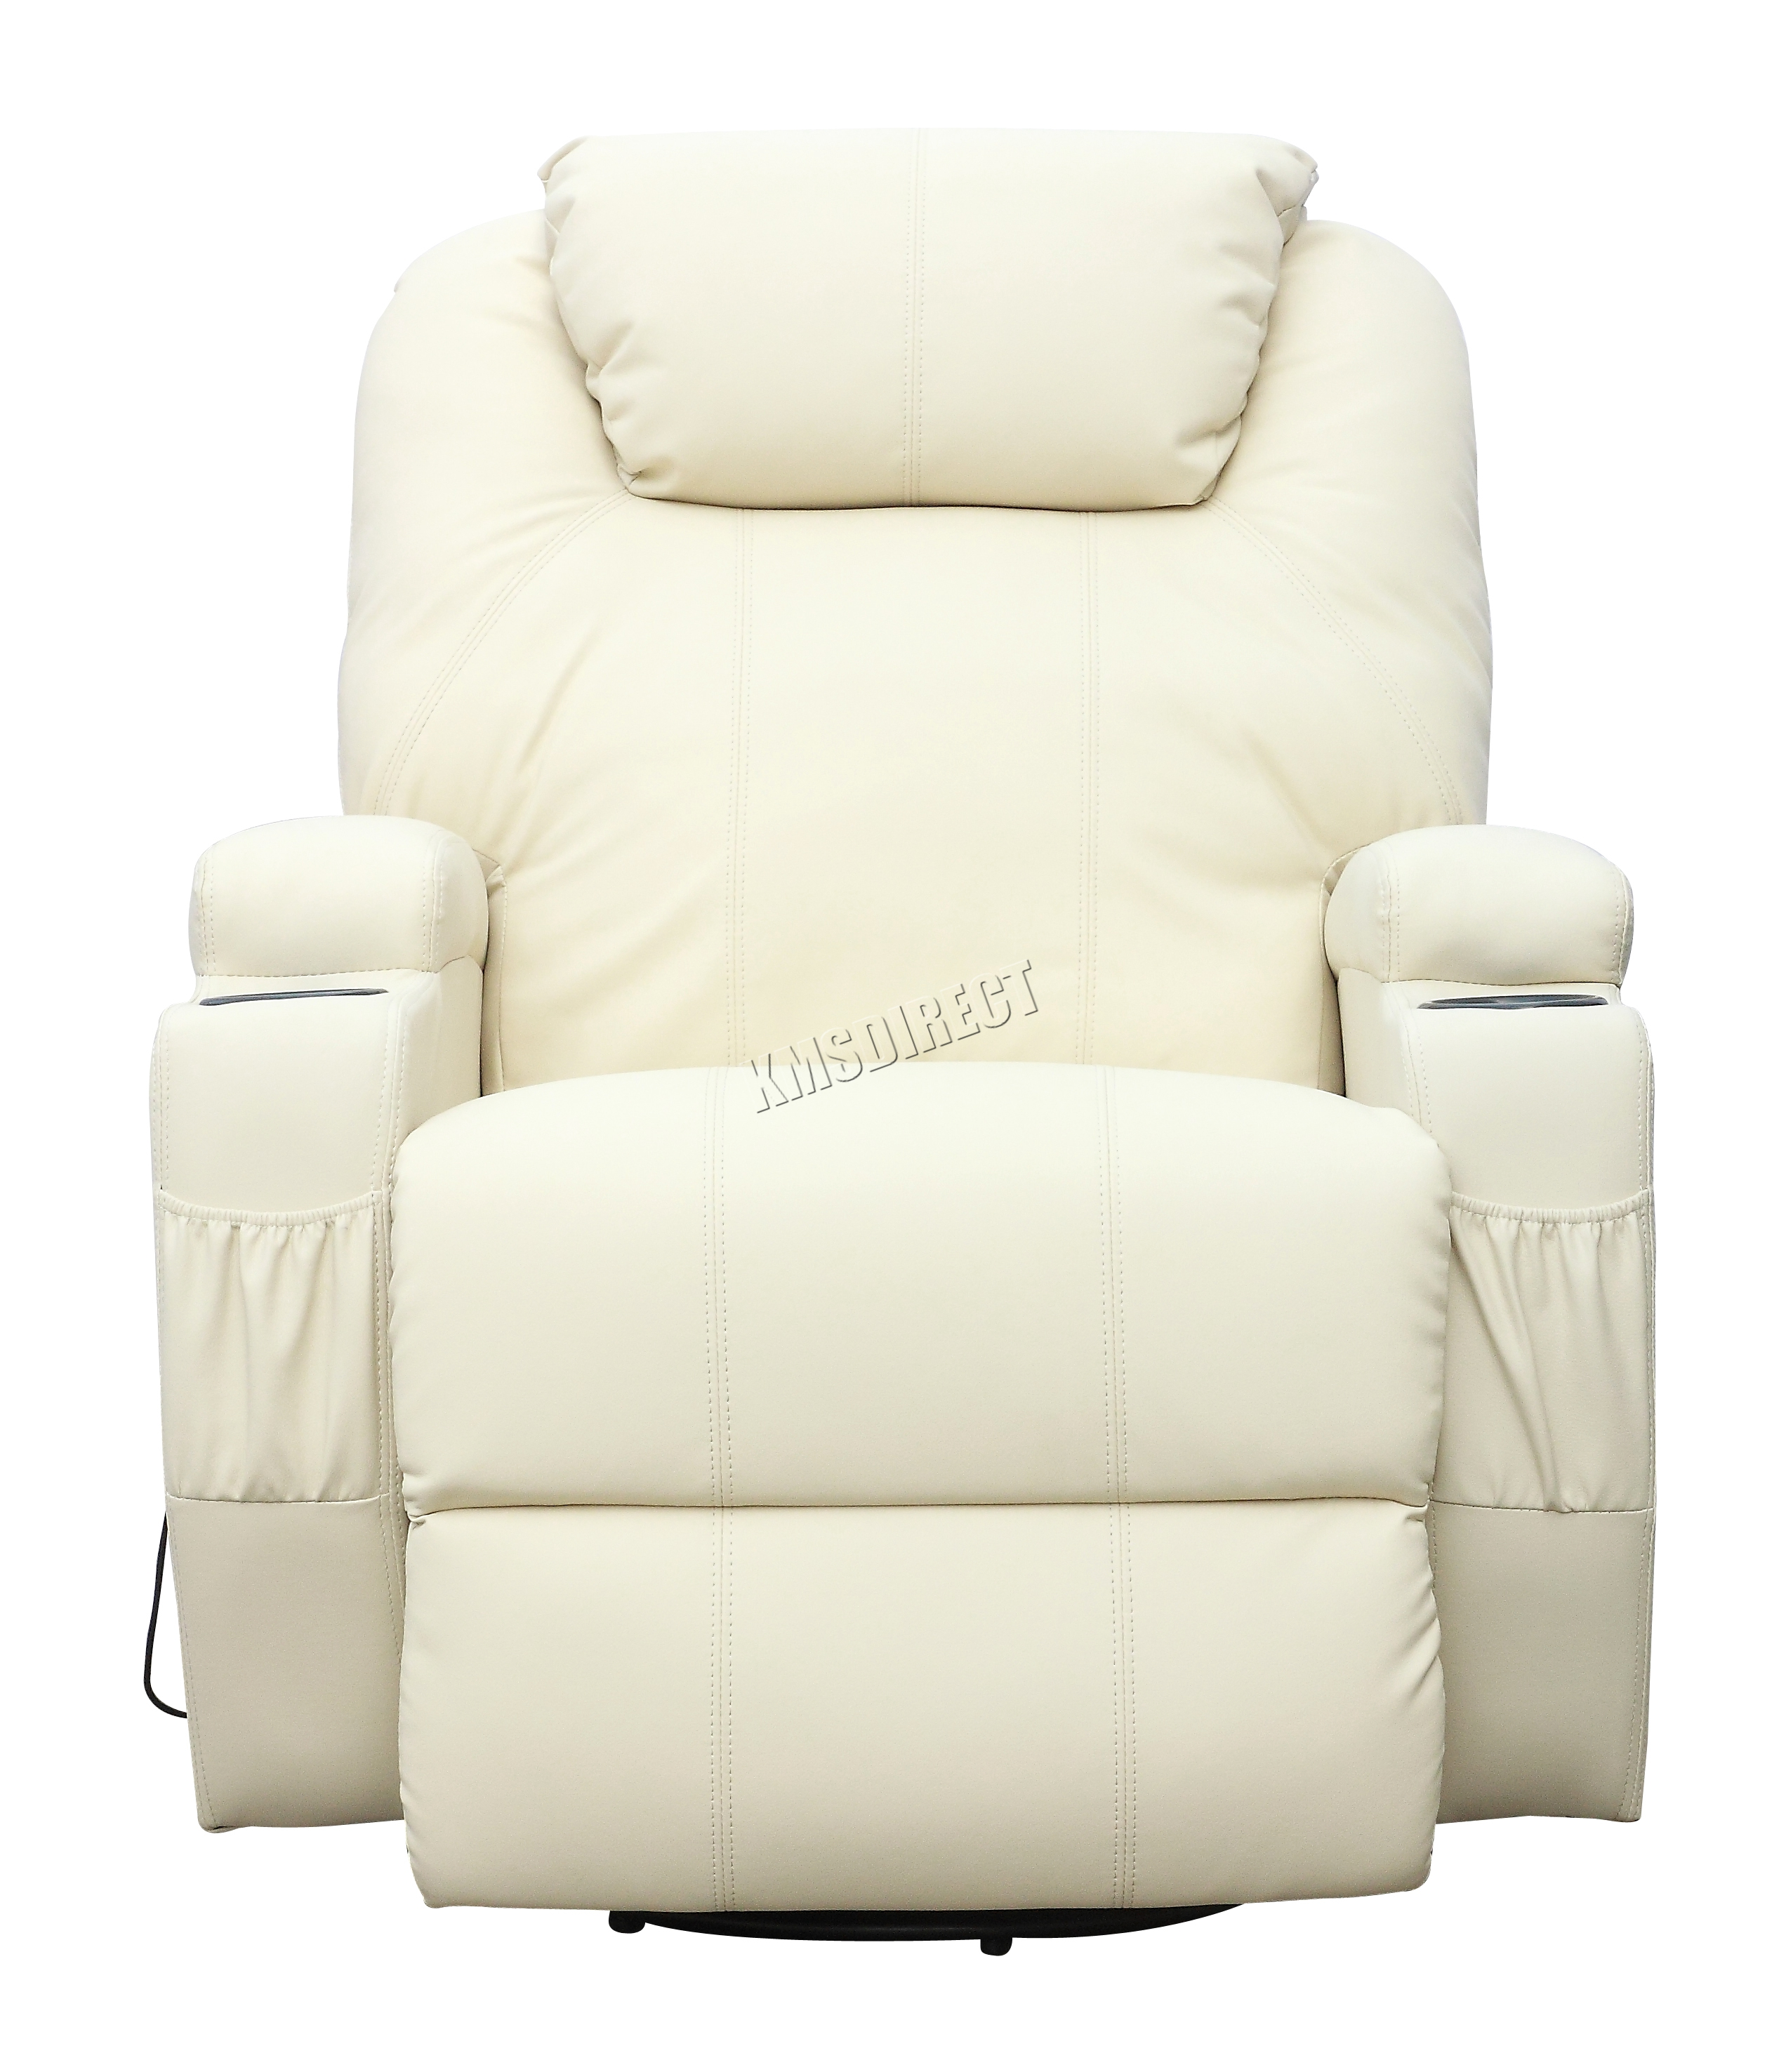 FoxHunter-Bonded-Leather-Massage-Recliner-Chair-Cinema-Sofa-  sc 1 st  eBay & FoxHunter Bonded Leather Massage Recliner Chair Cinema Sofa ... islam-shia.org